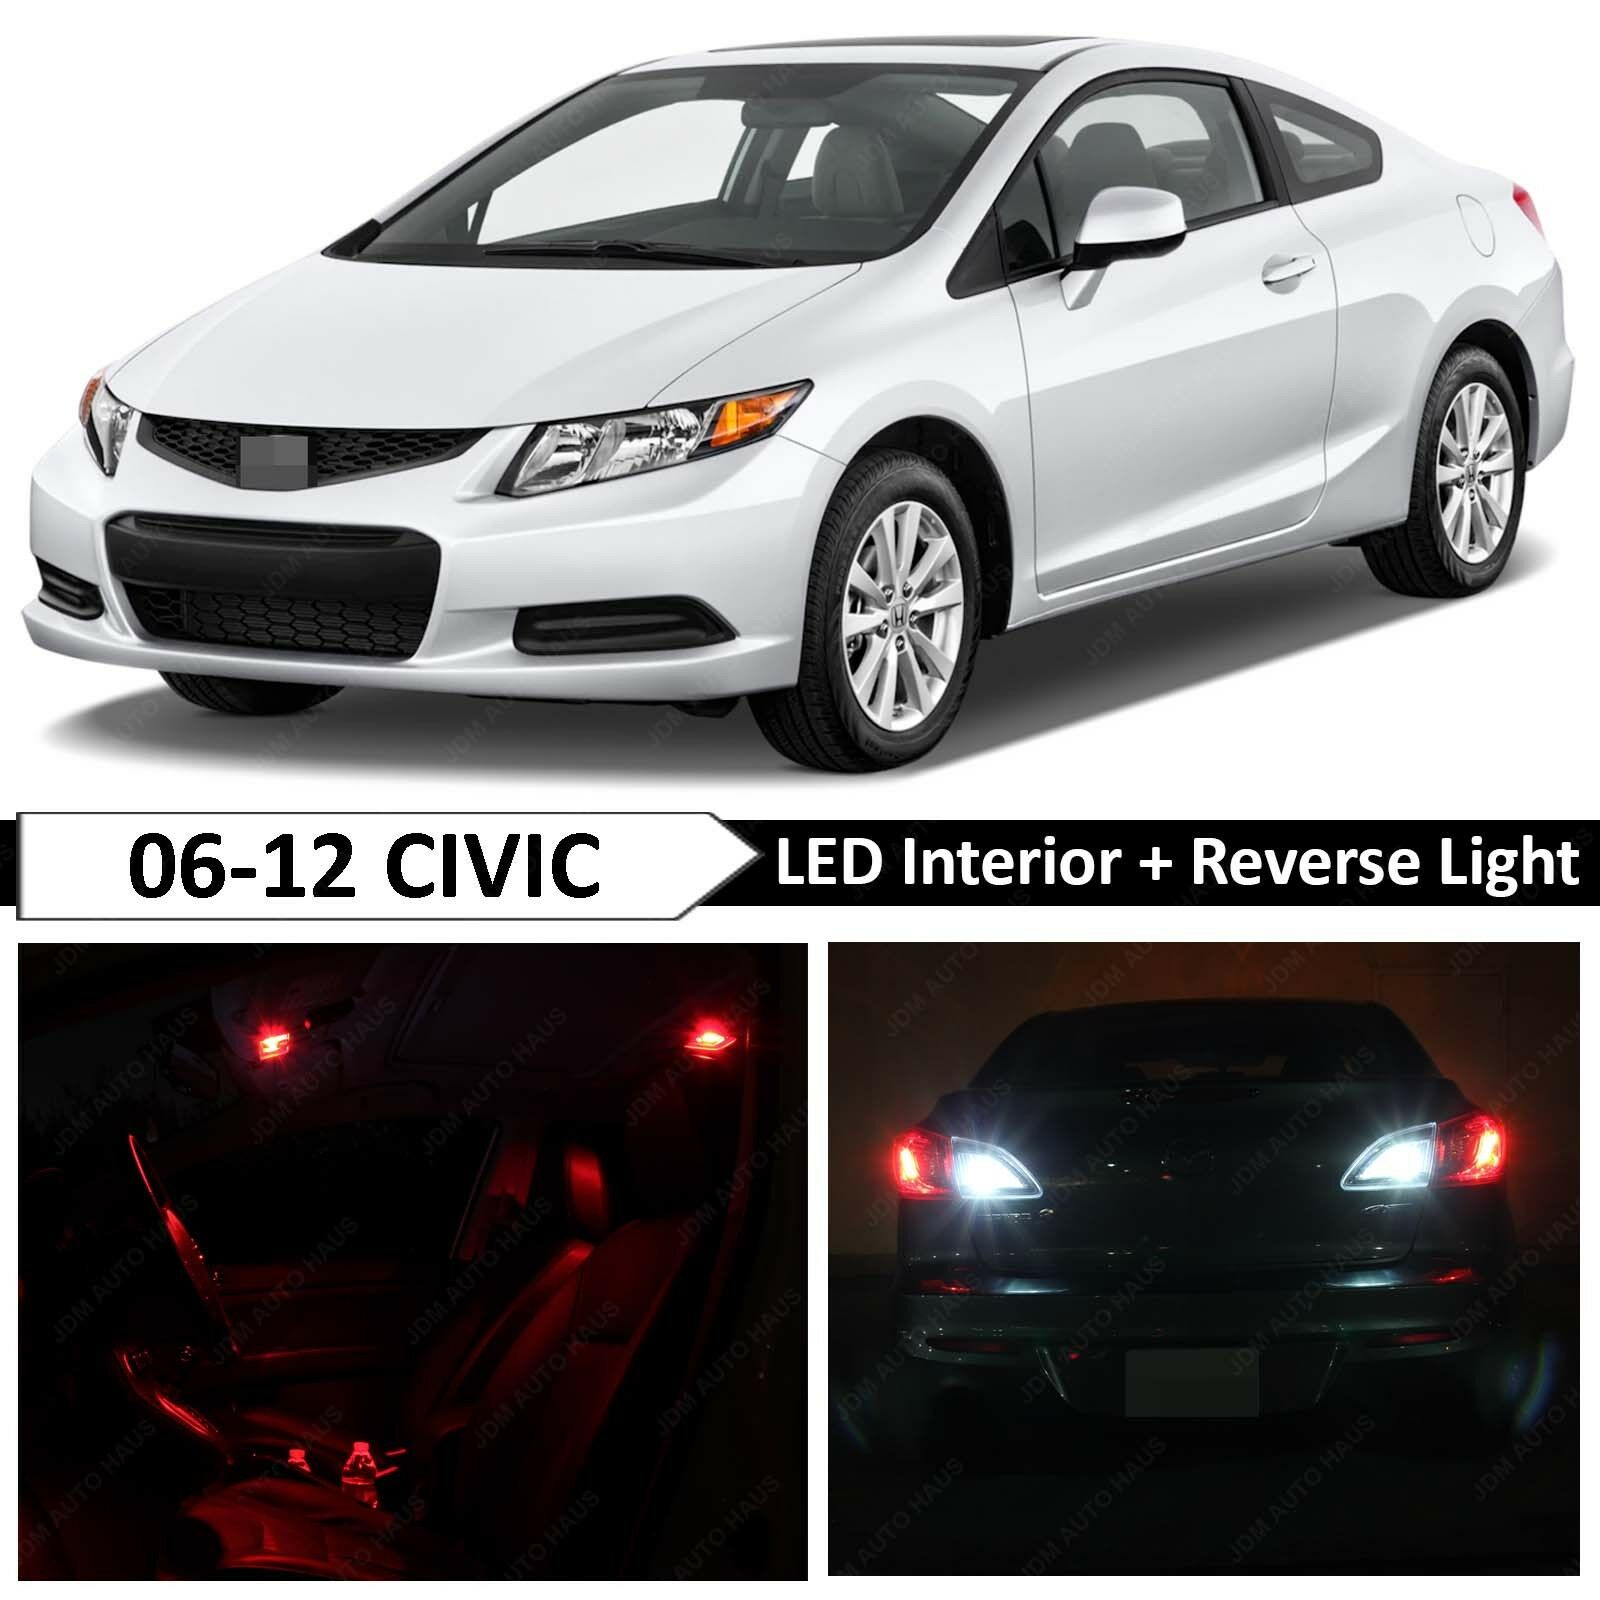 10x Blue Interior Led Lights Replacement Package Kit Fit: 10x Red Interior Reverse LED Light Package Kit Fit 2006